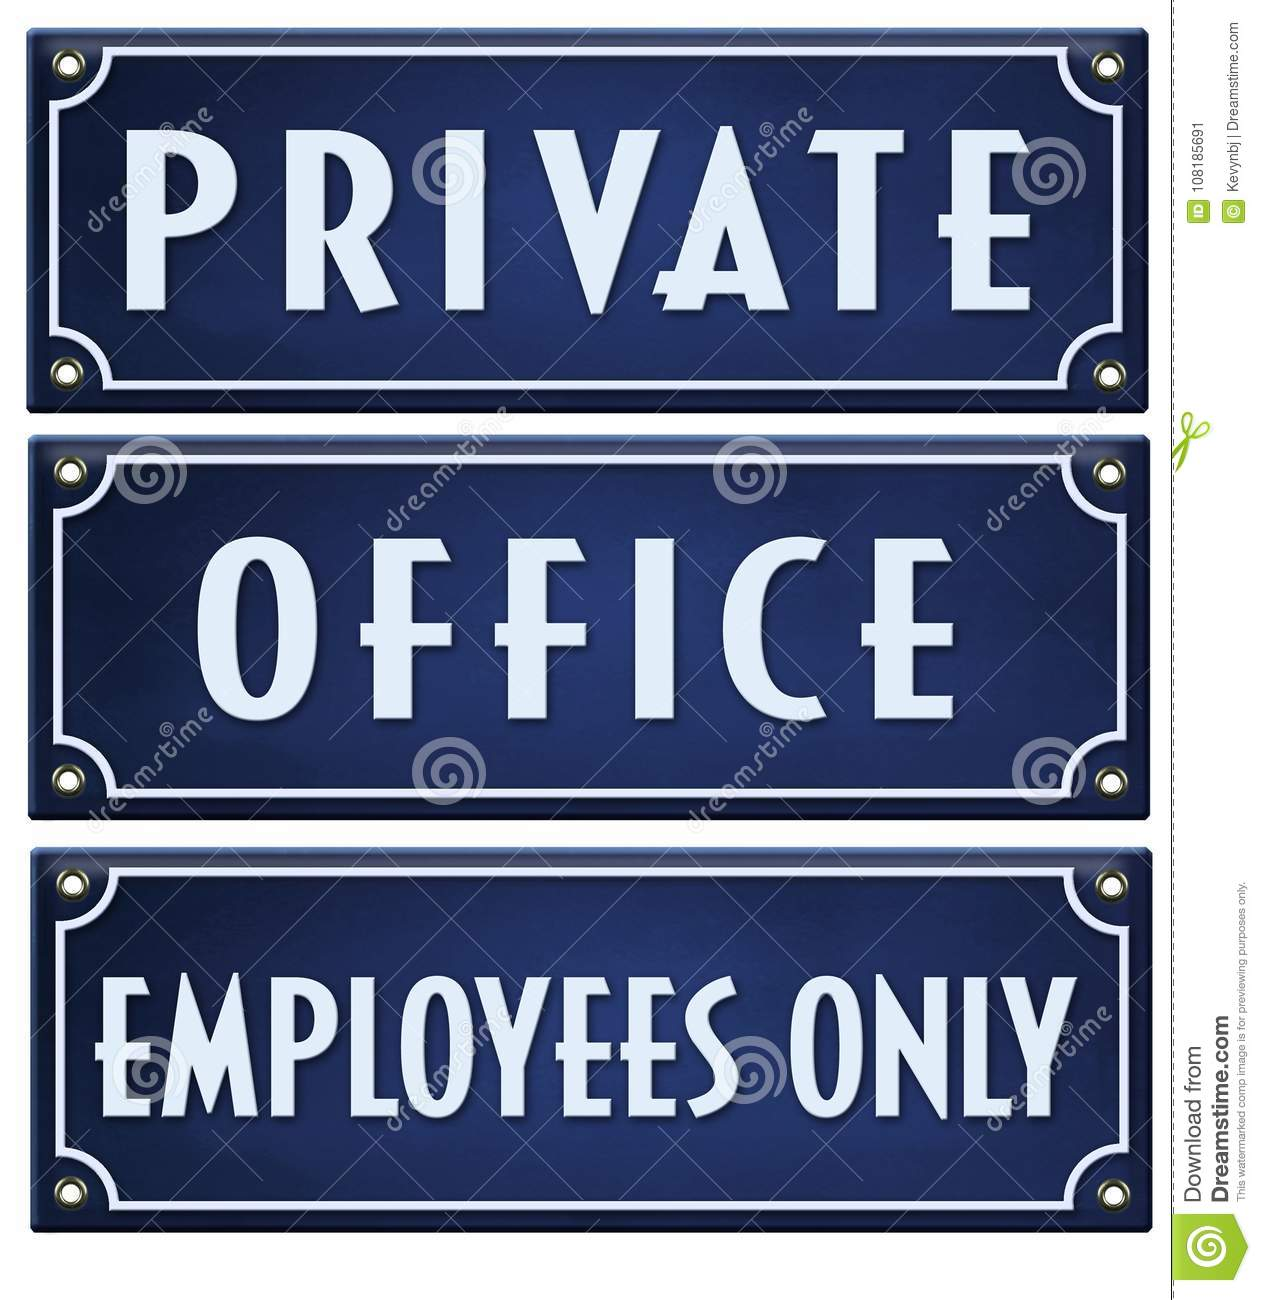 Private Sign Office Employees